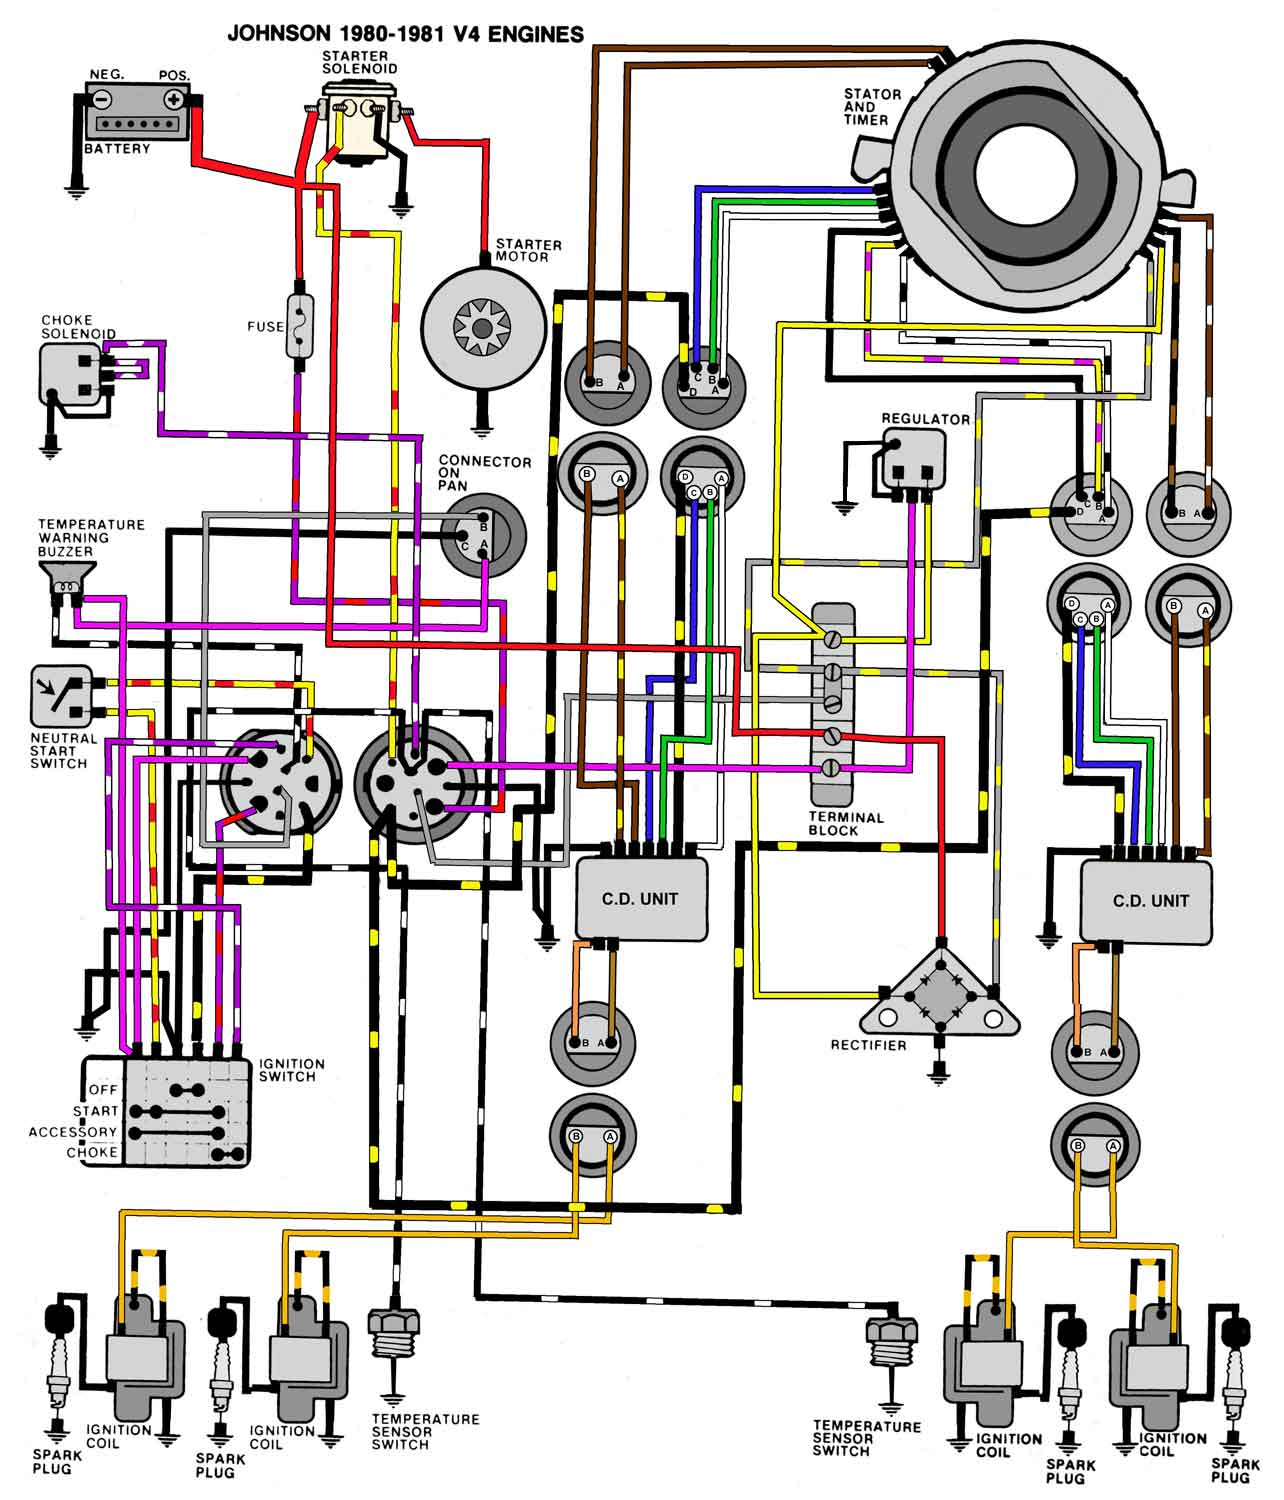 80_81_V4 mastertech marine evinrude johnson outboard wiring diagrams 70 HP Evinrude Schematic at gsmx.co